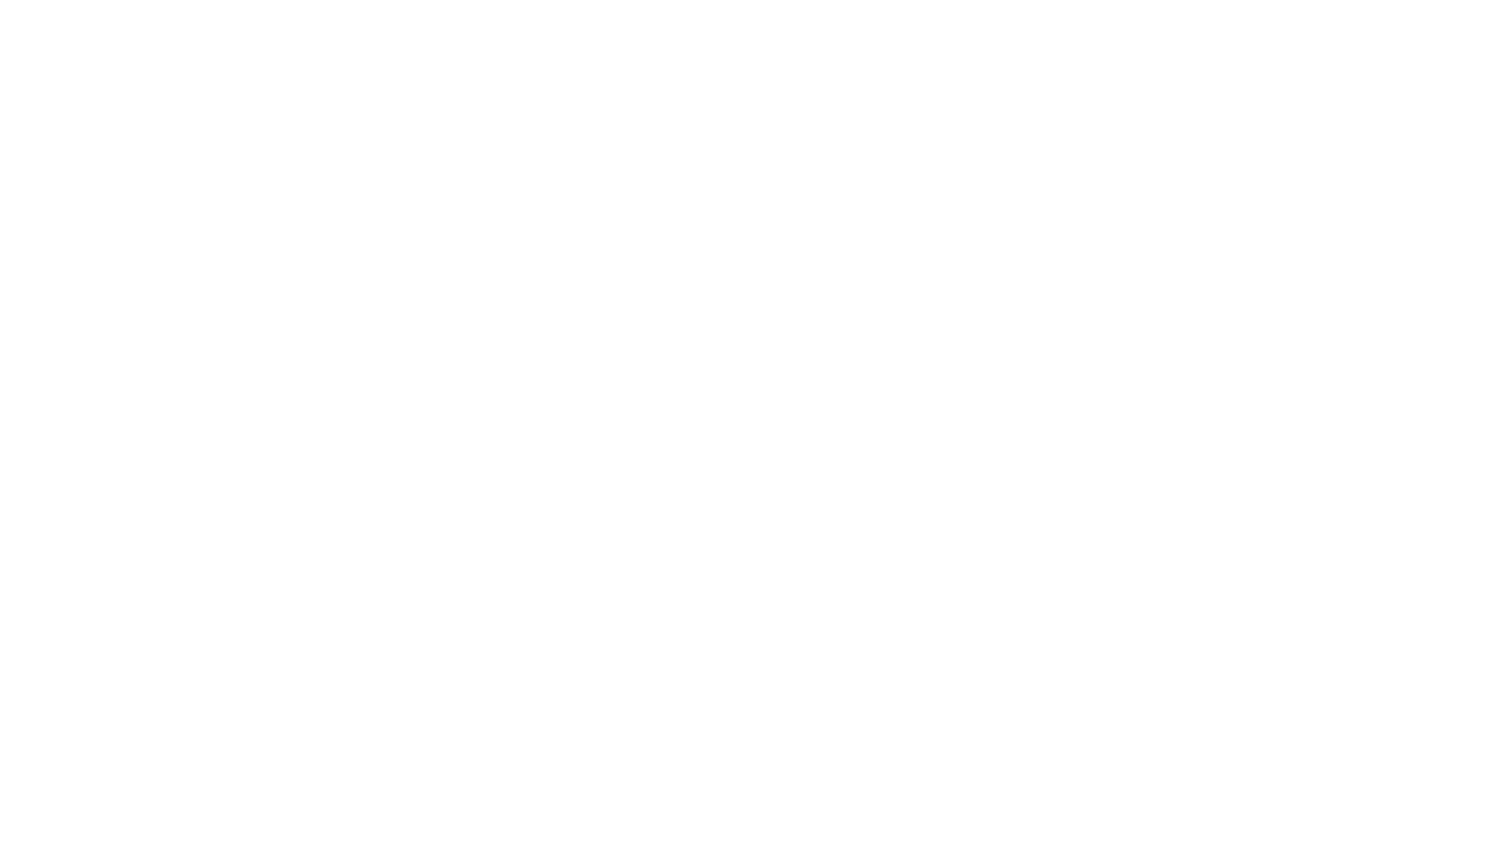 Rushforth Network